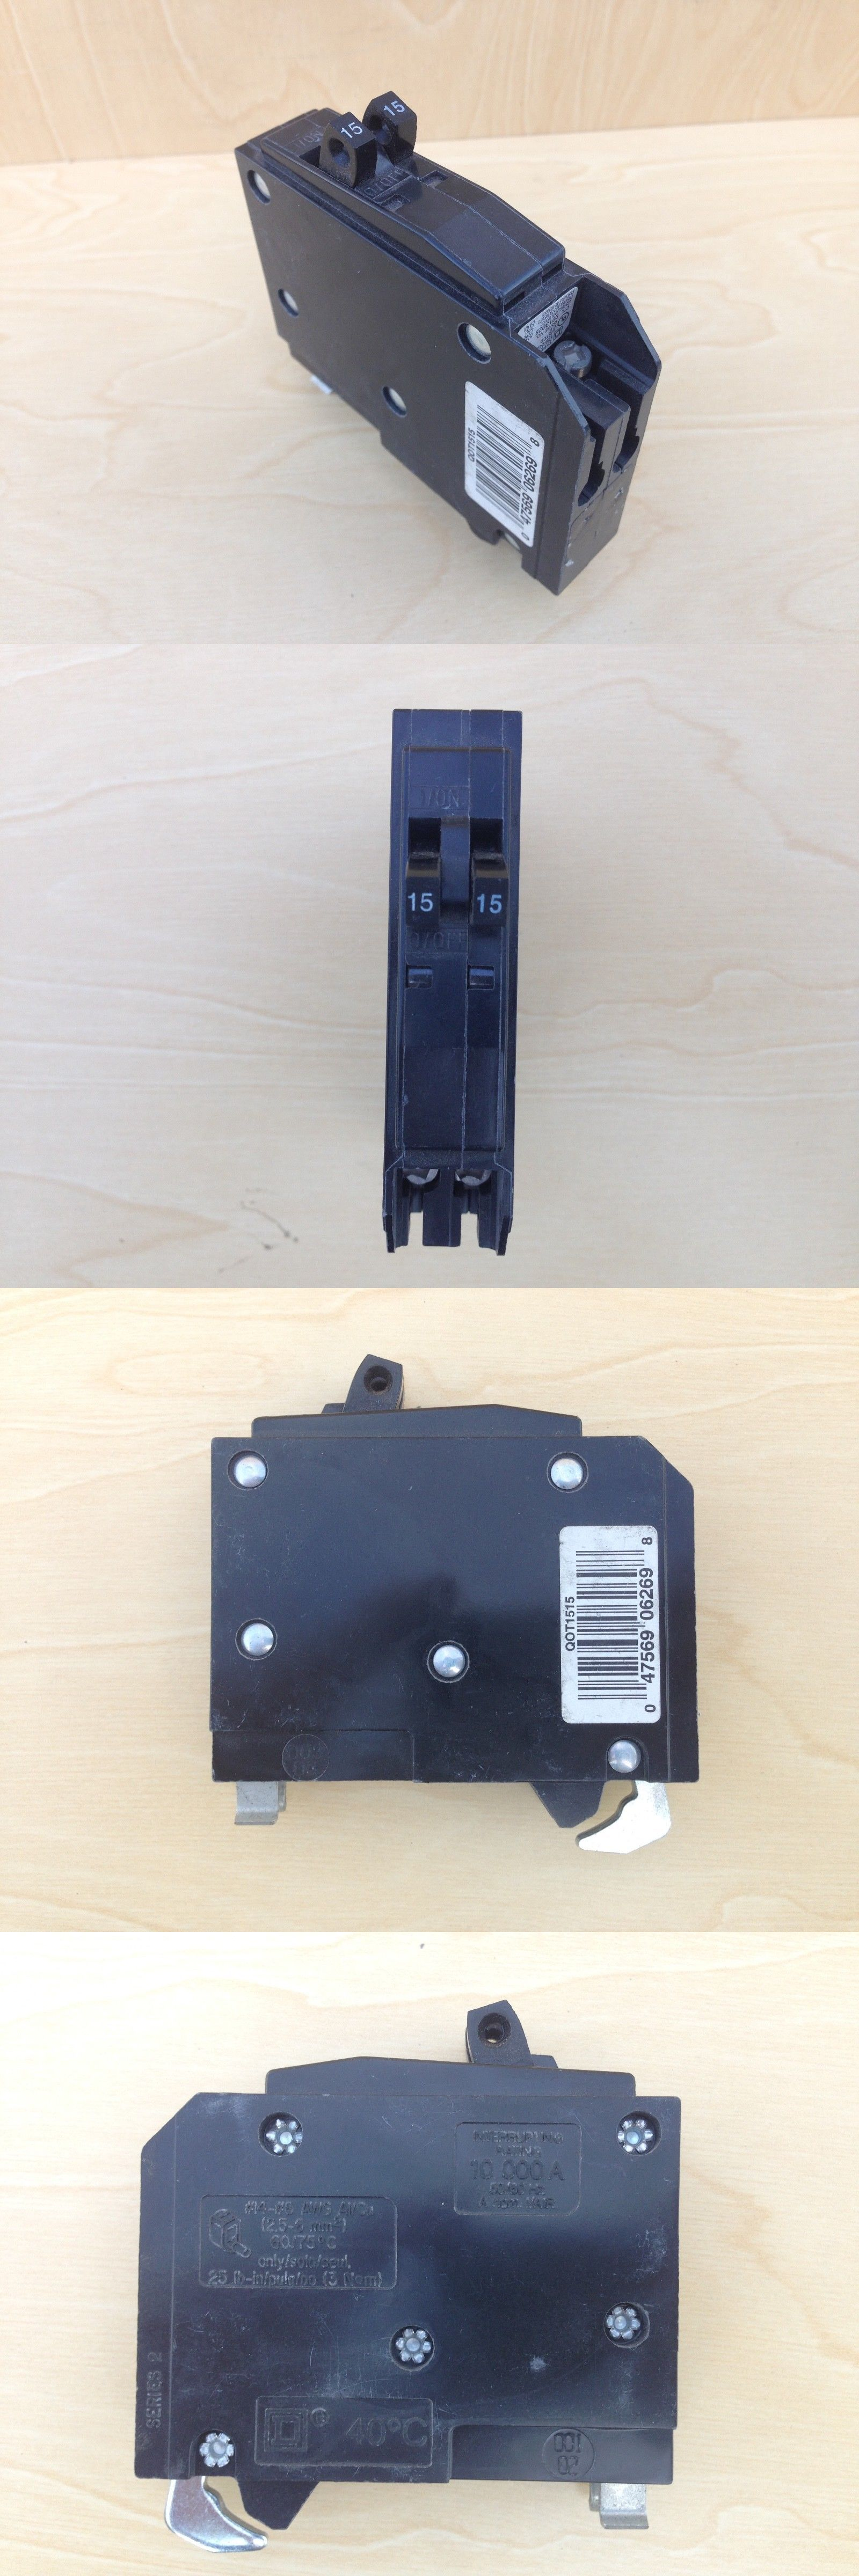 circuit breakers and fuse boxes 20596 square d qot1515 qo 2 15 amp single pole tandem circuit breaker new buy it now only 11 49 on ebay circuit  [ 1600 x 4800 Pixel ]